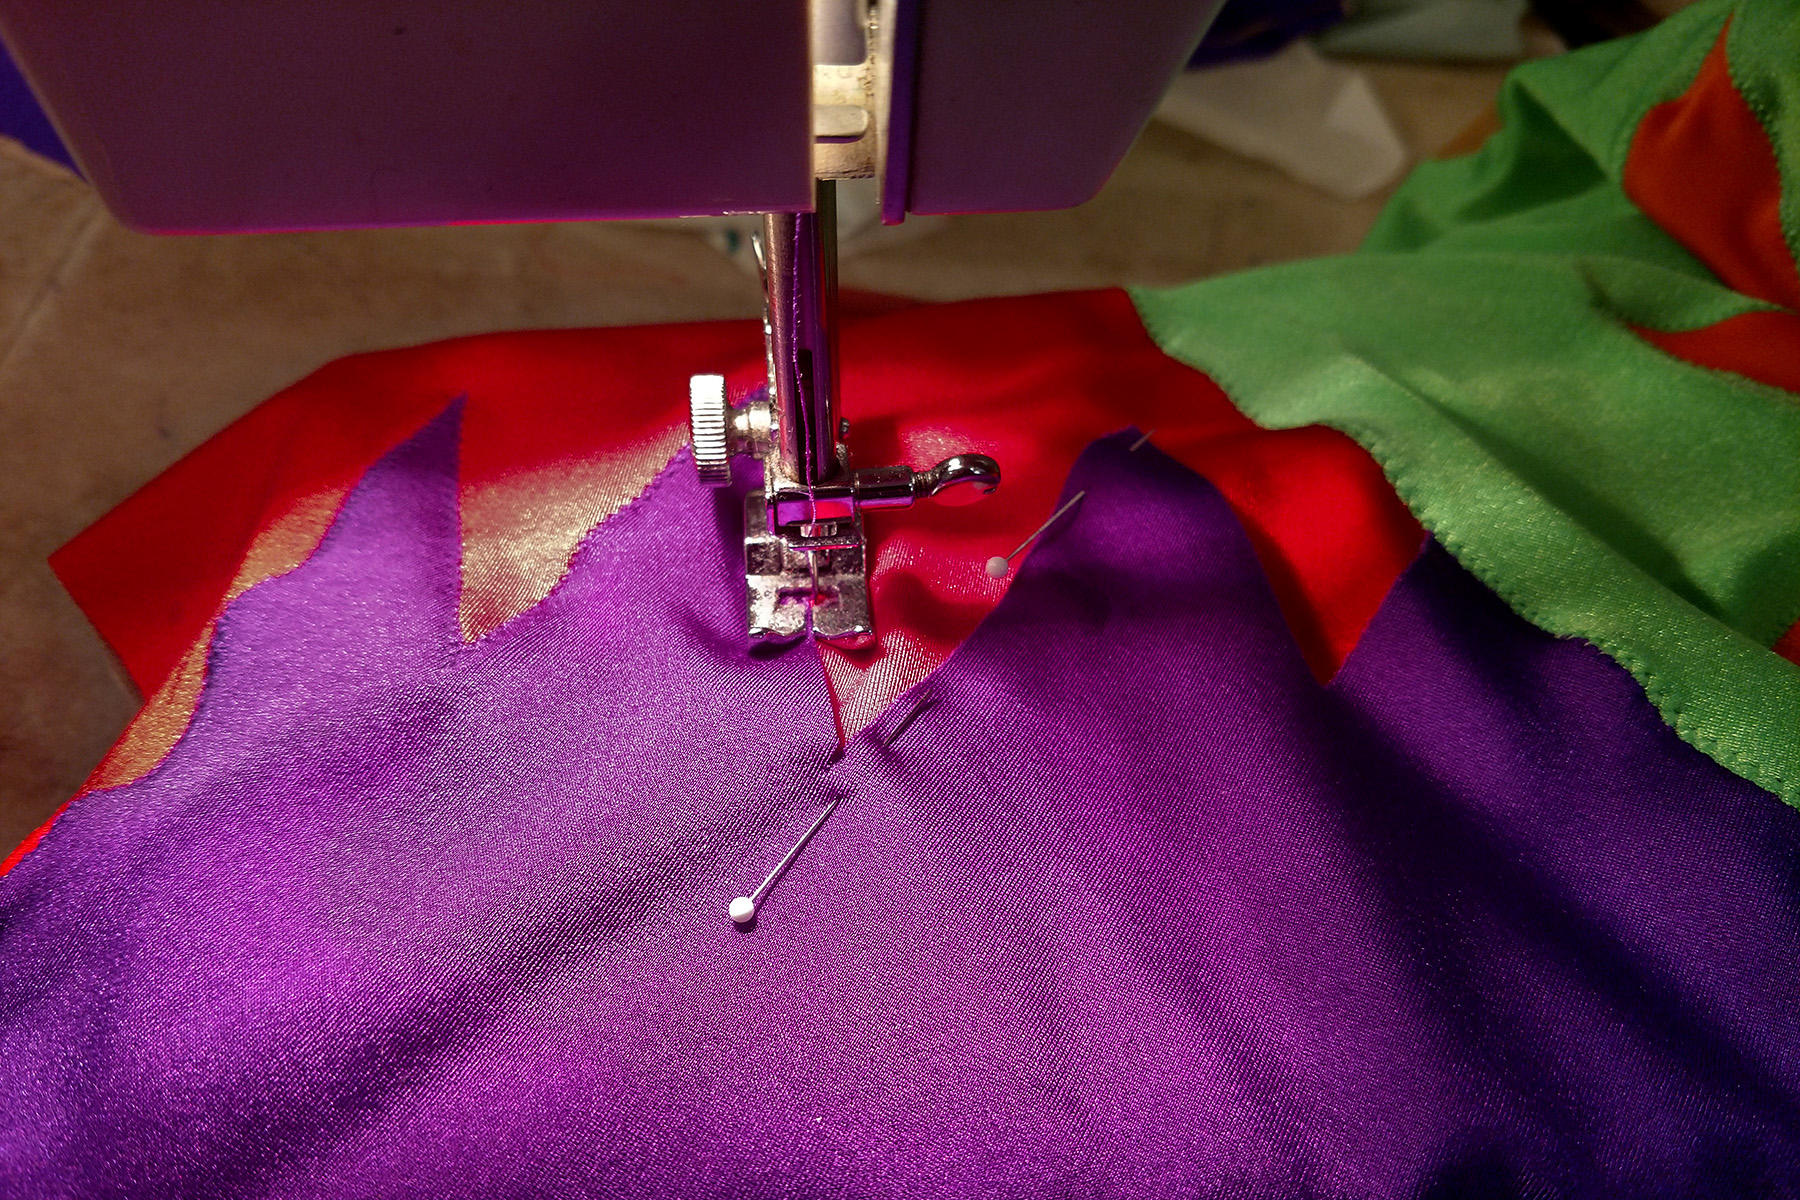 A piece of one of the jazz team synchro suits is being sewn in a machine. Purple is shown being stitched onto red spandex.